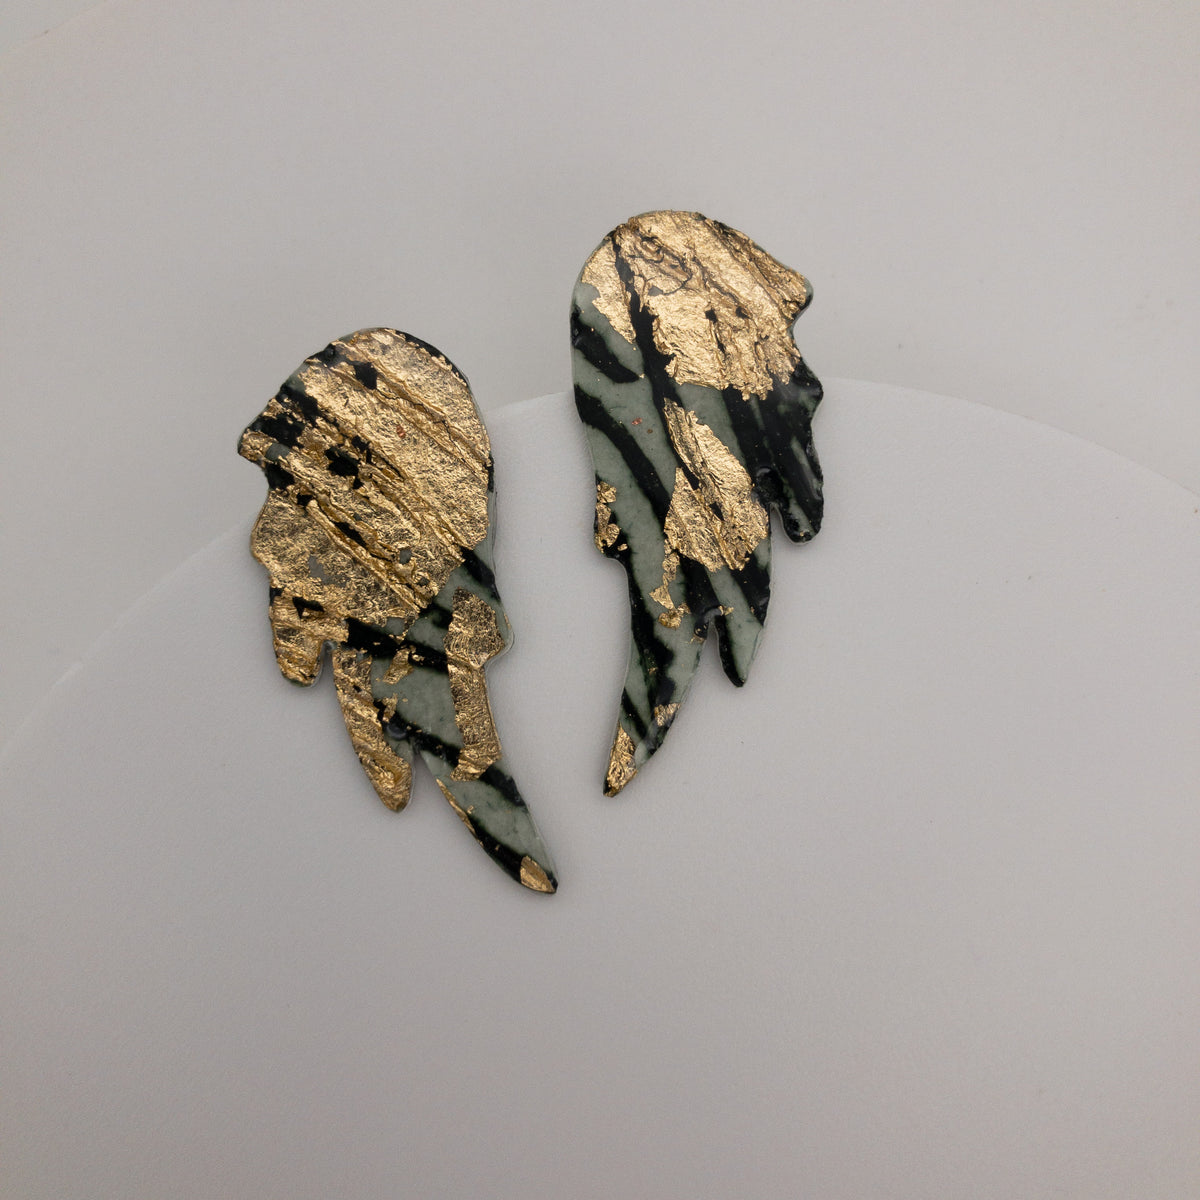 Wings of Desire sgraffito earrings in gold/forest green